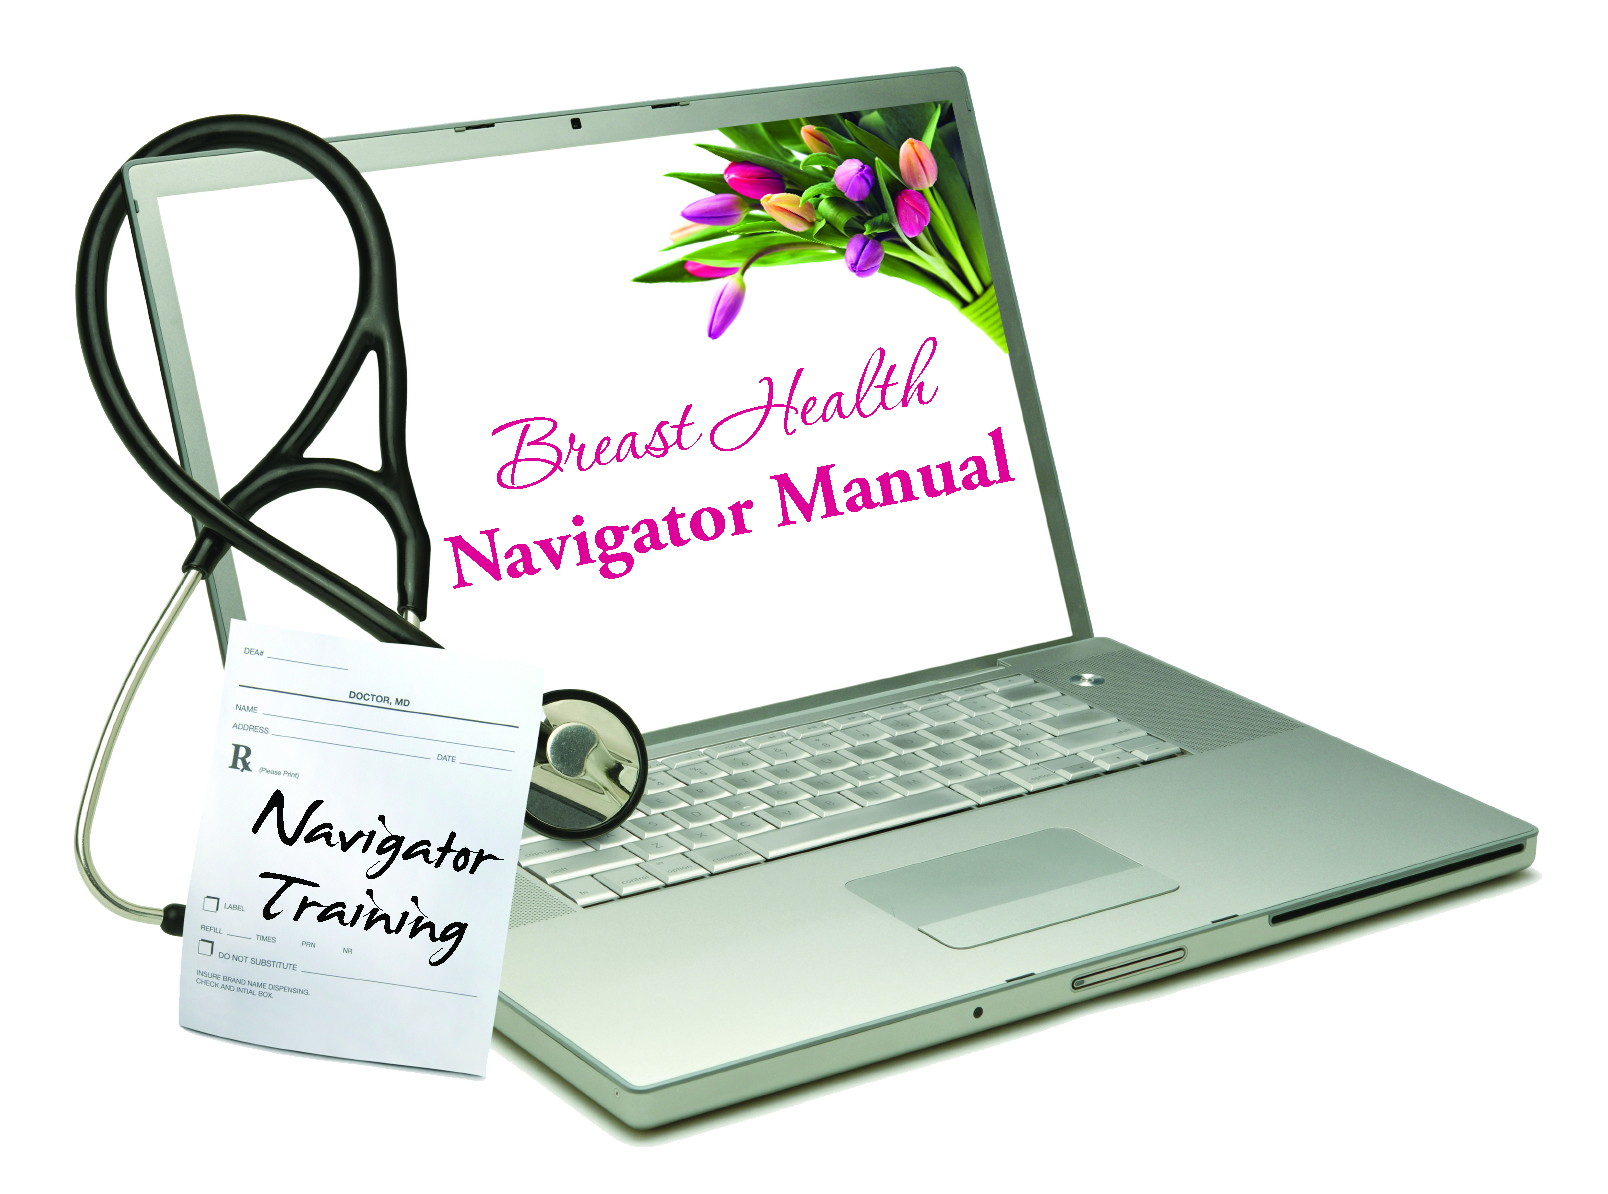 Breast Health Navigator Manual